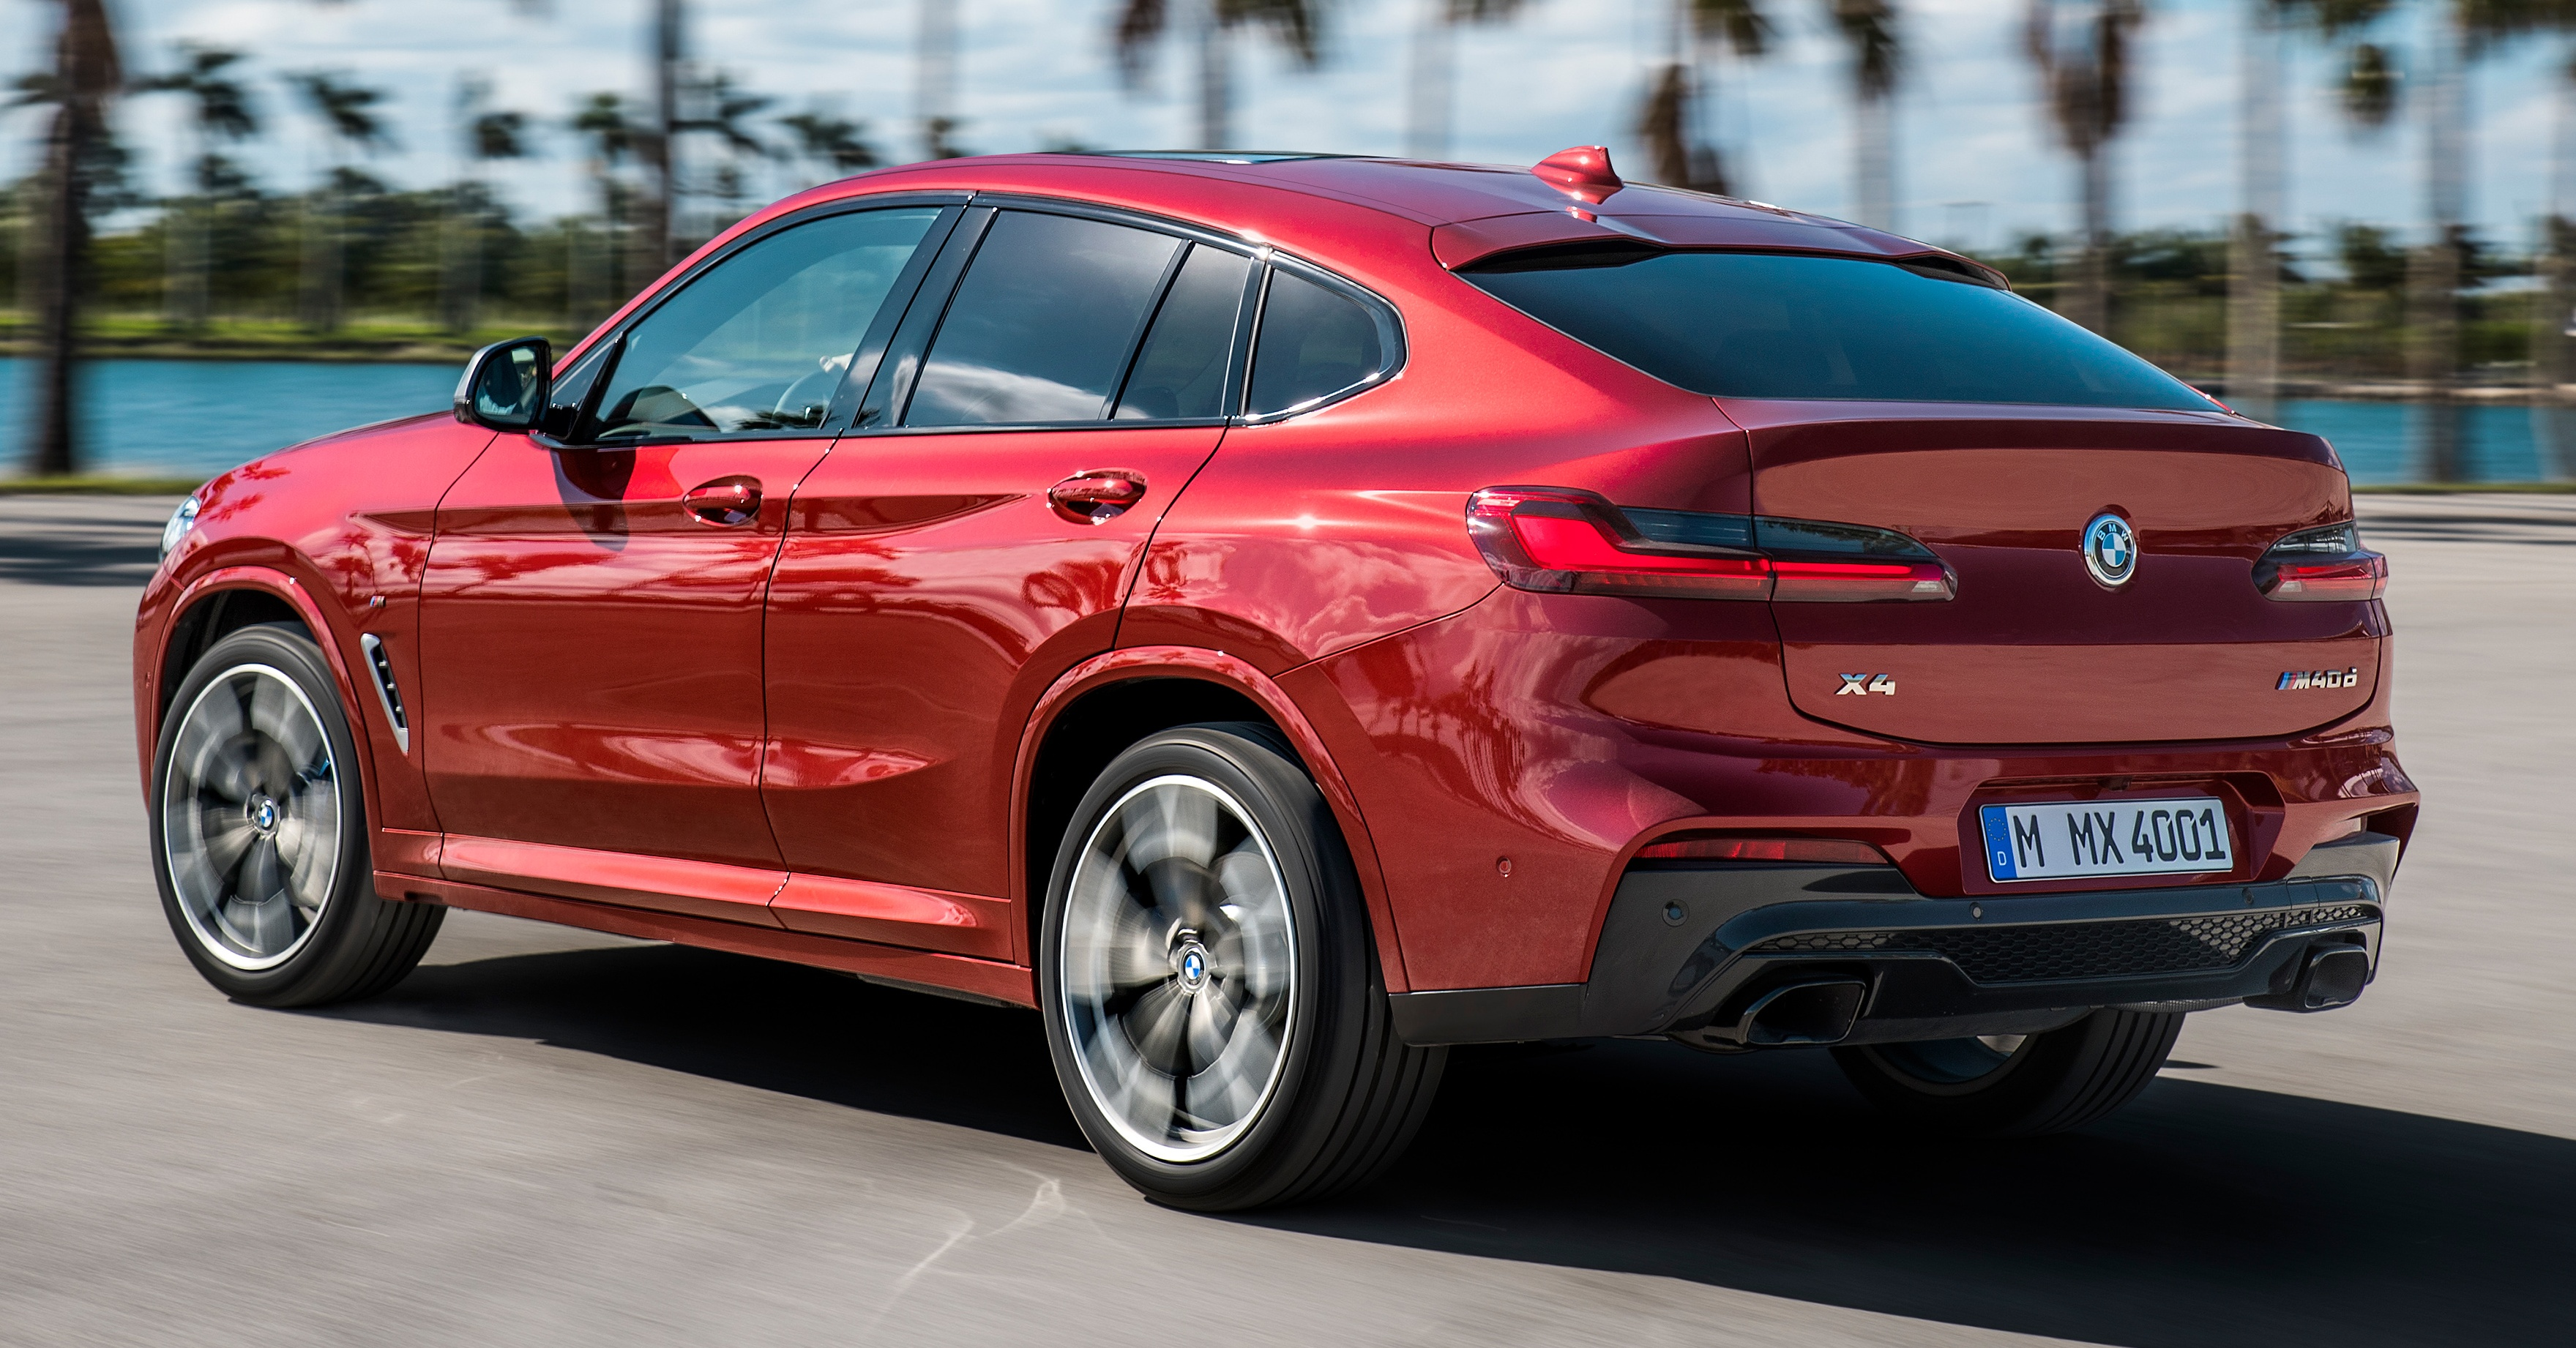 G02 Bmw X4 Unveiled With M40i And M40d Variants Paultan Org